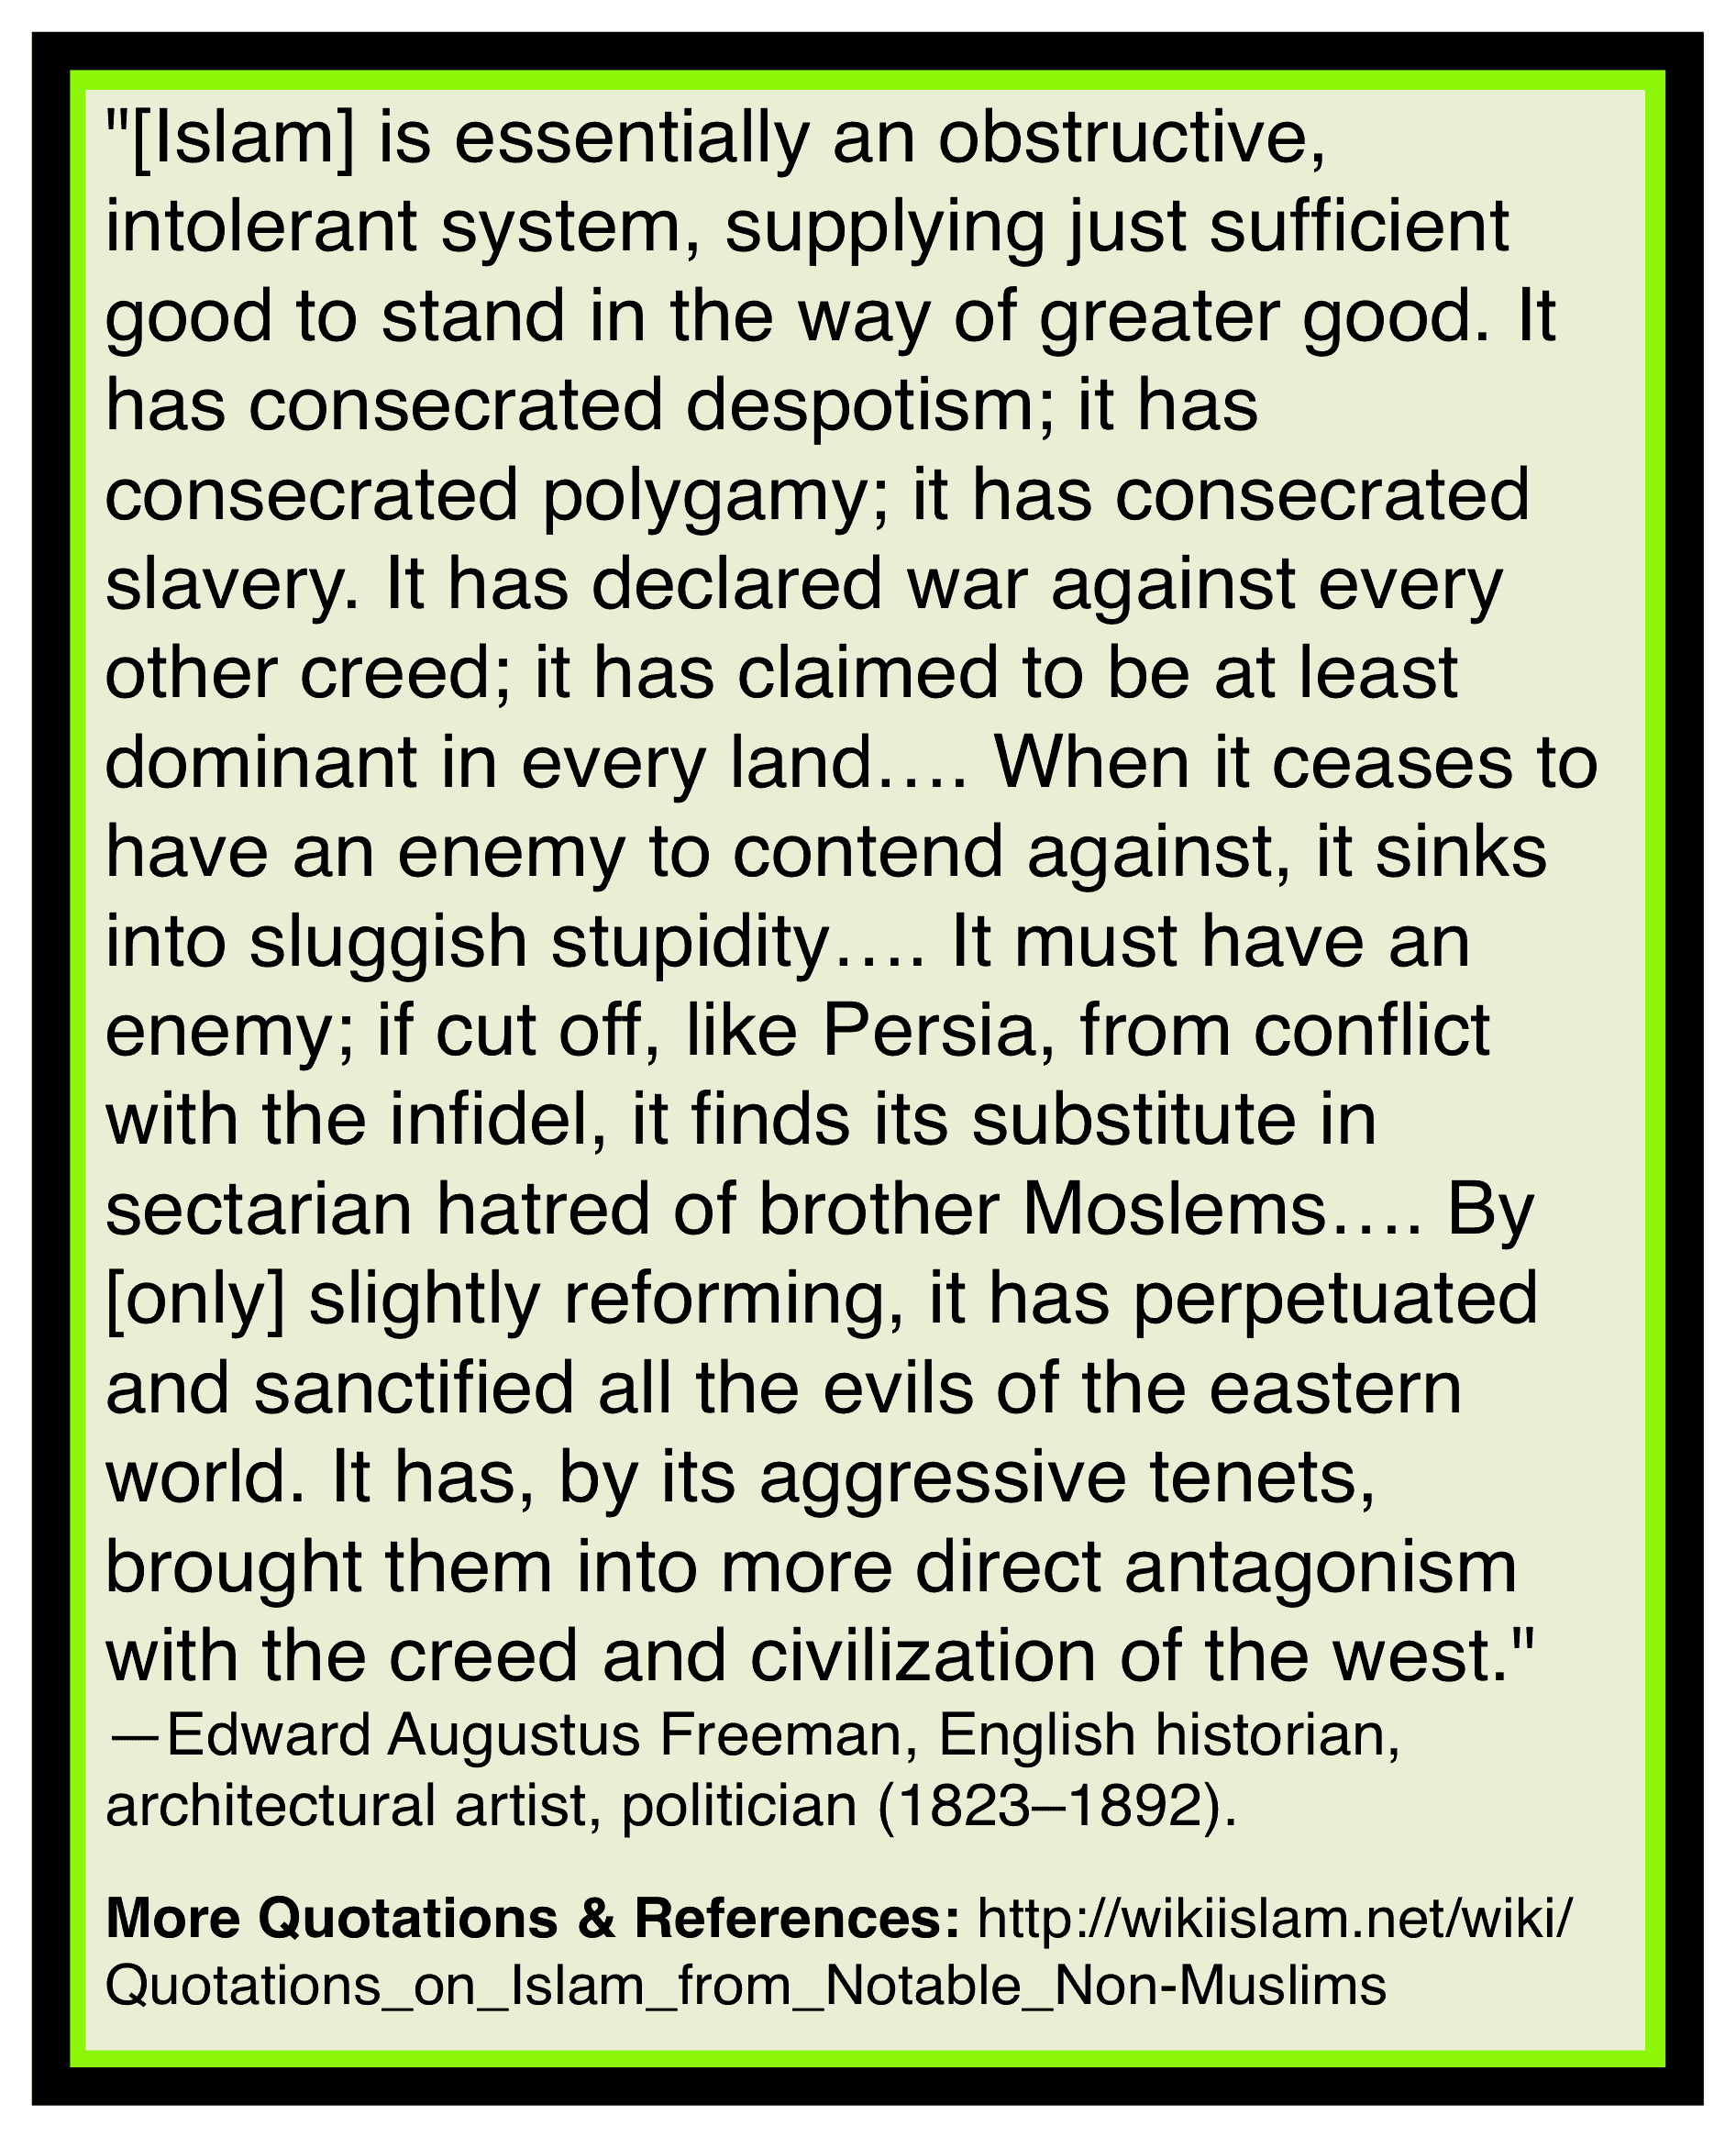 Islam in the way of good